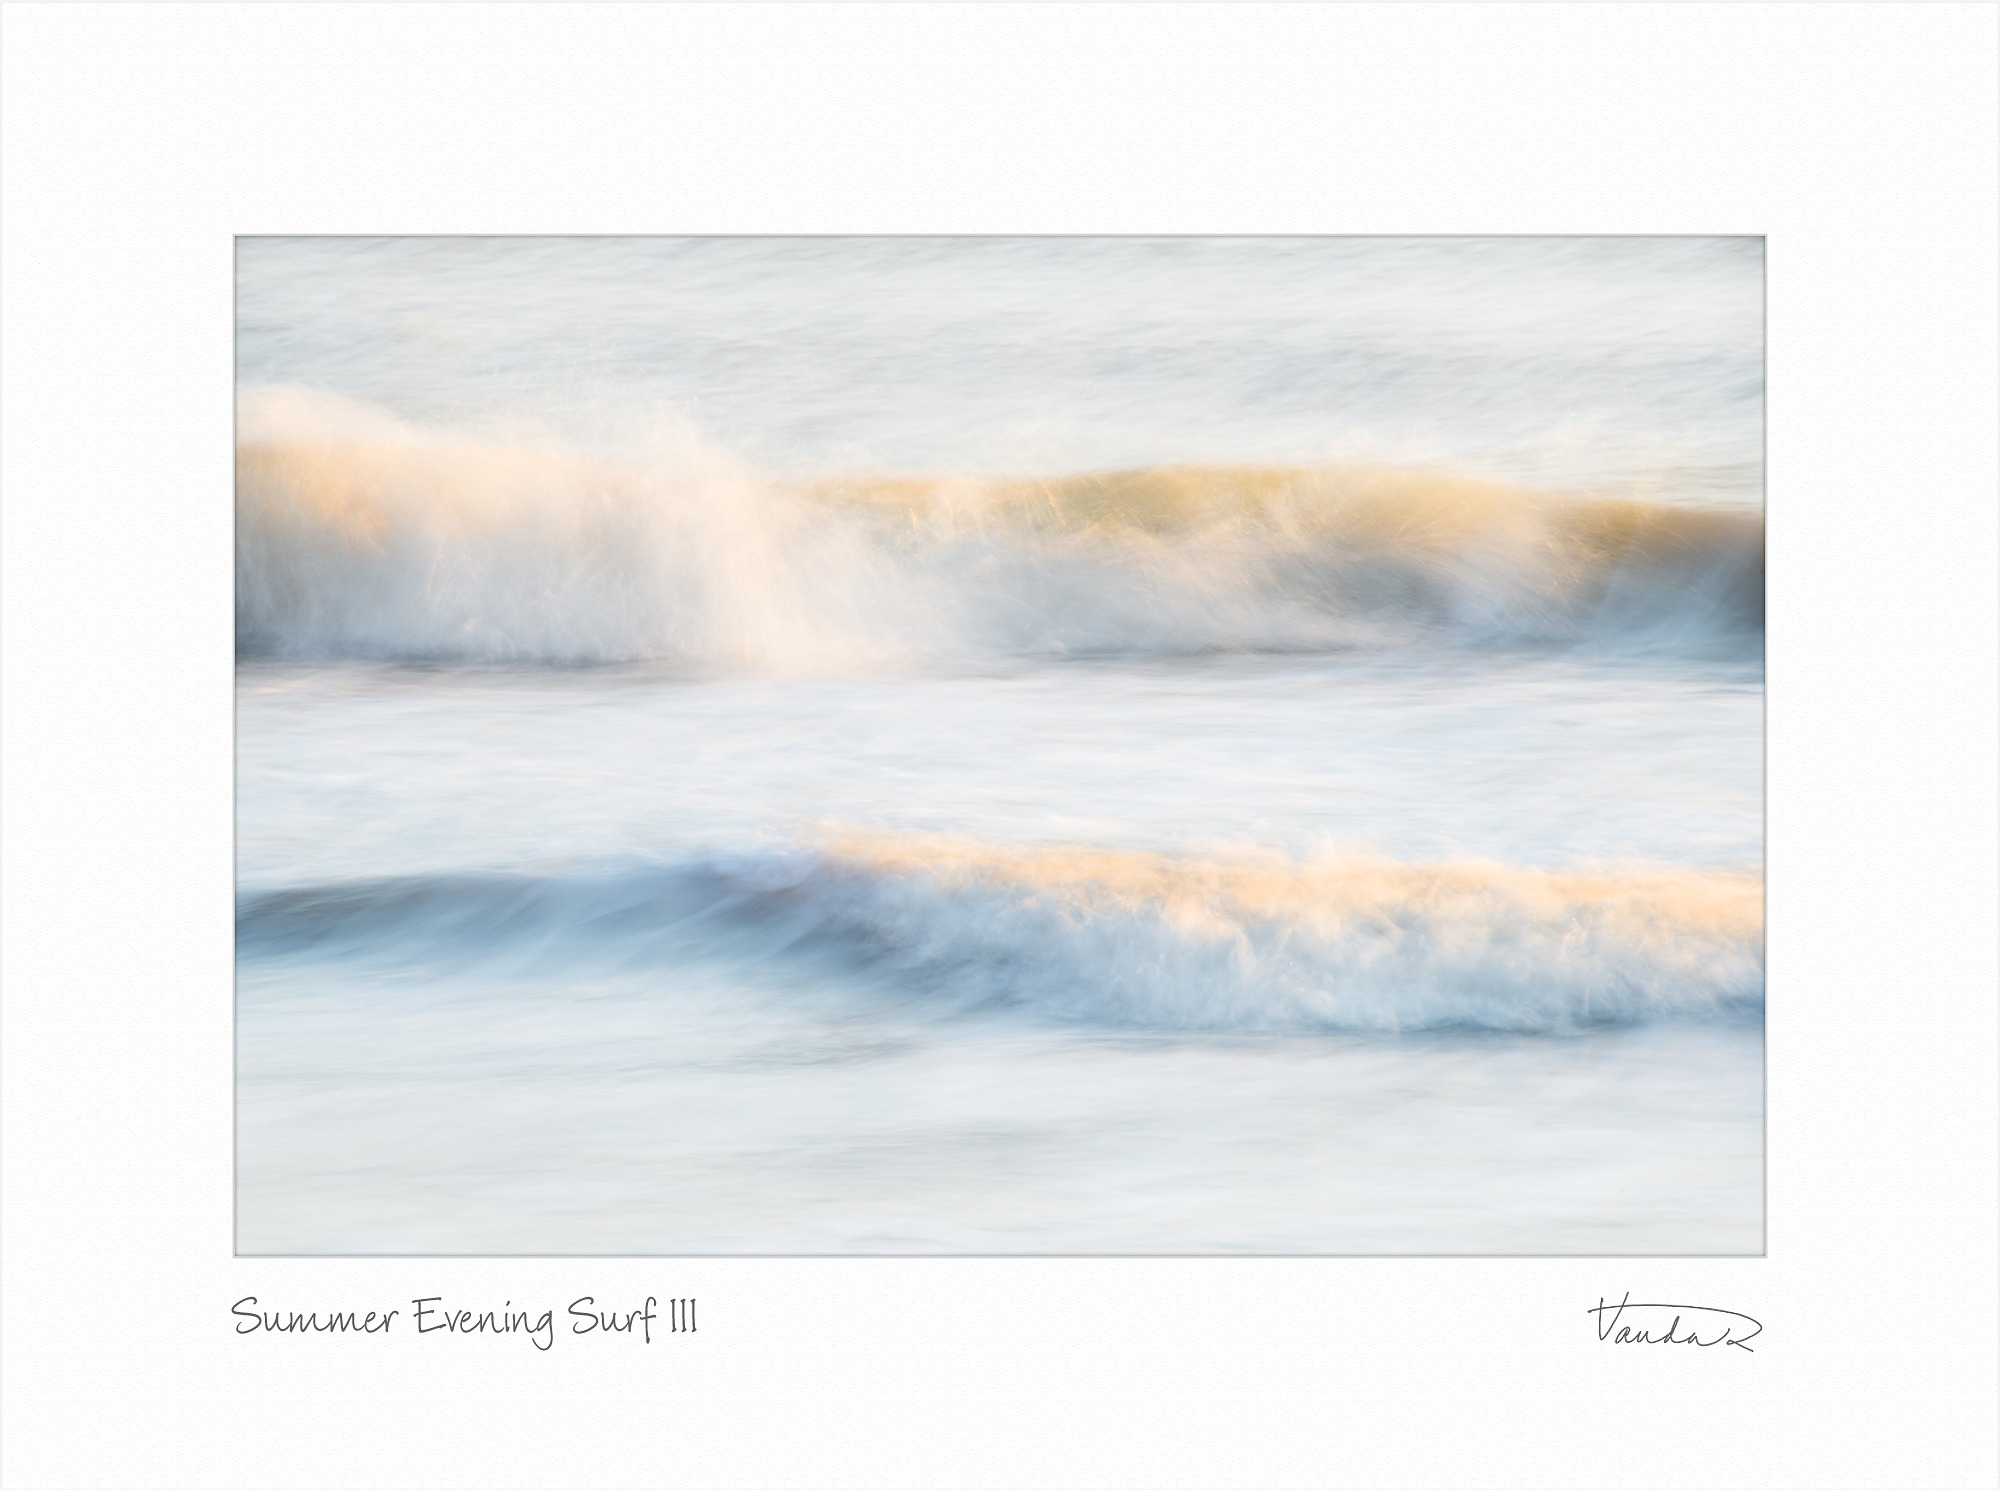 Summer Evening Surf III